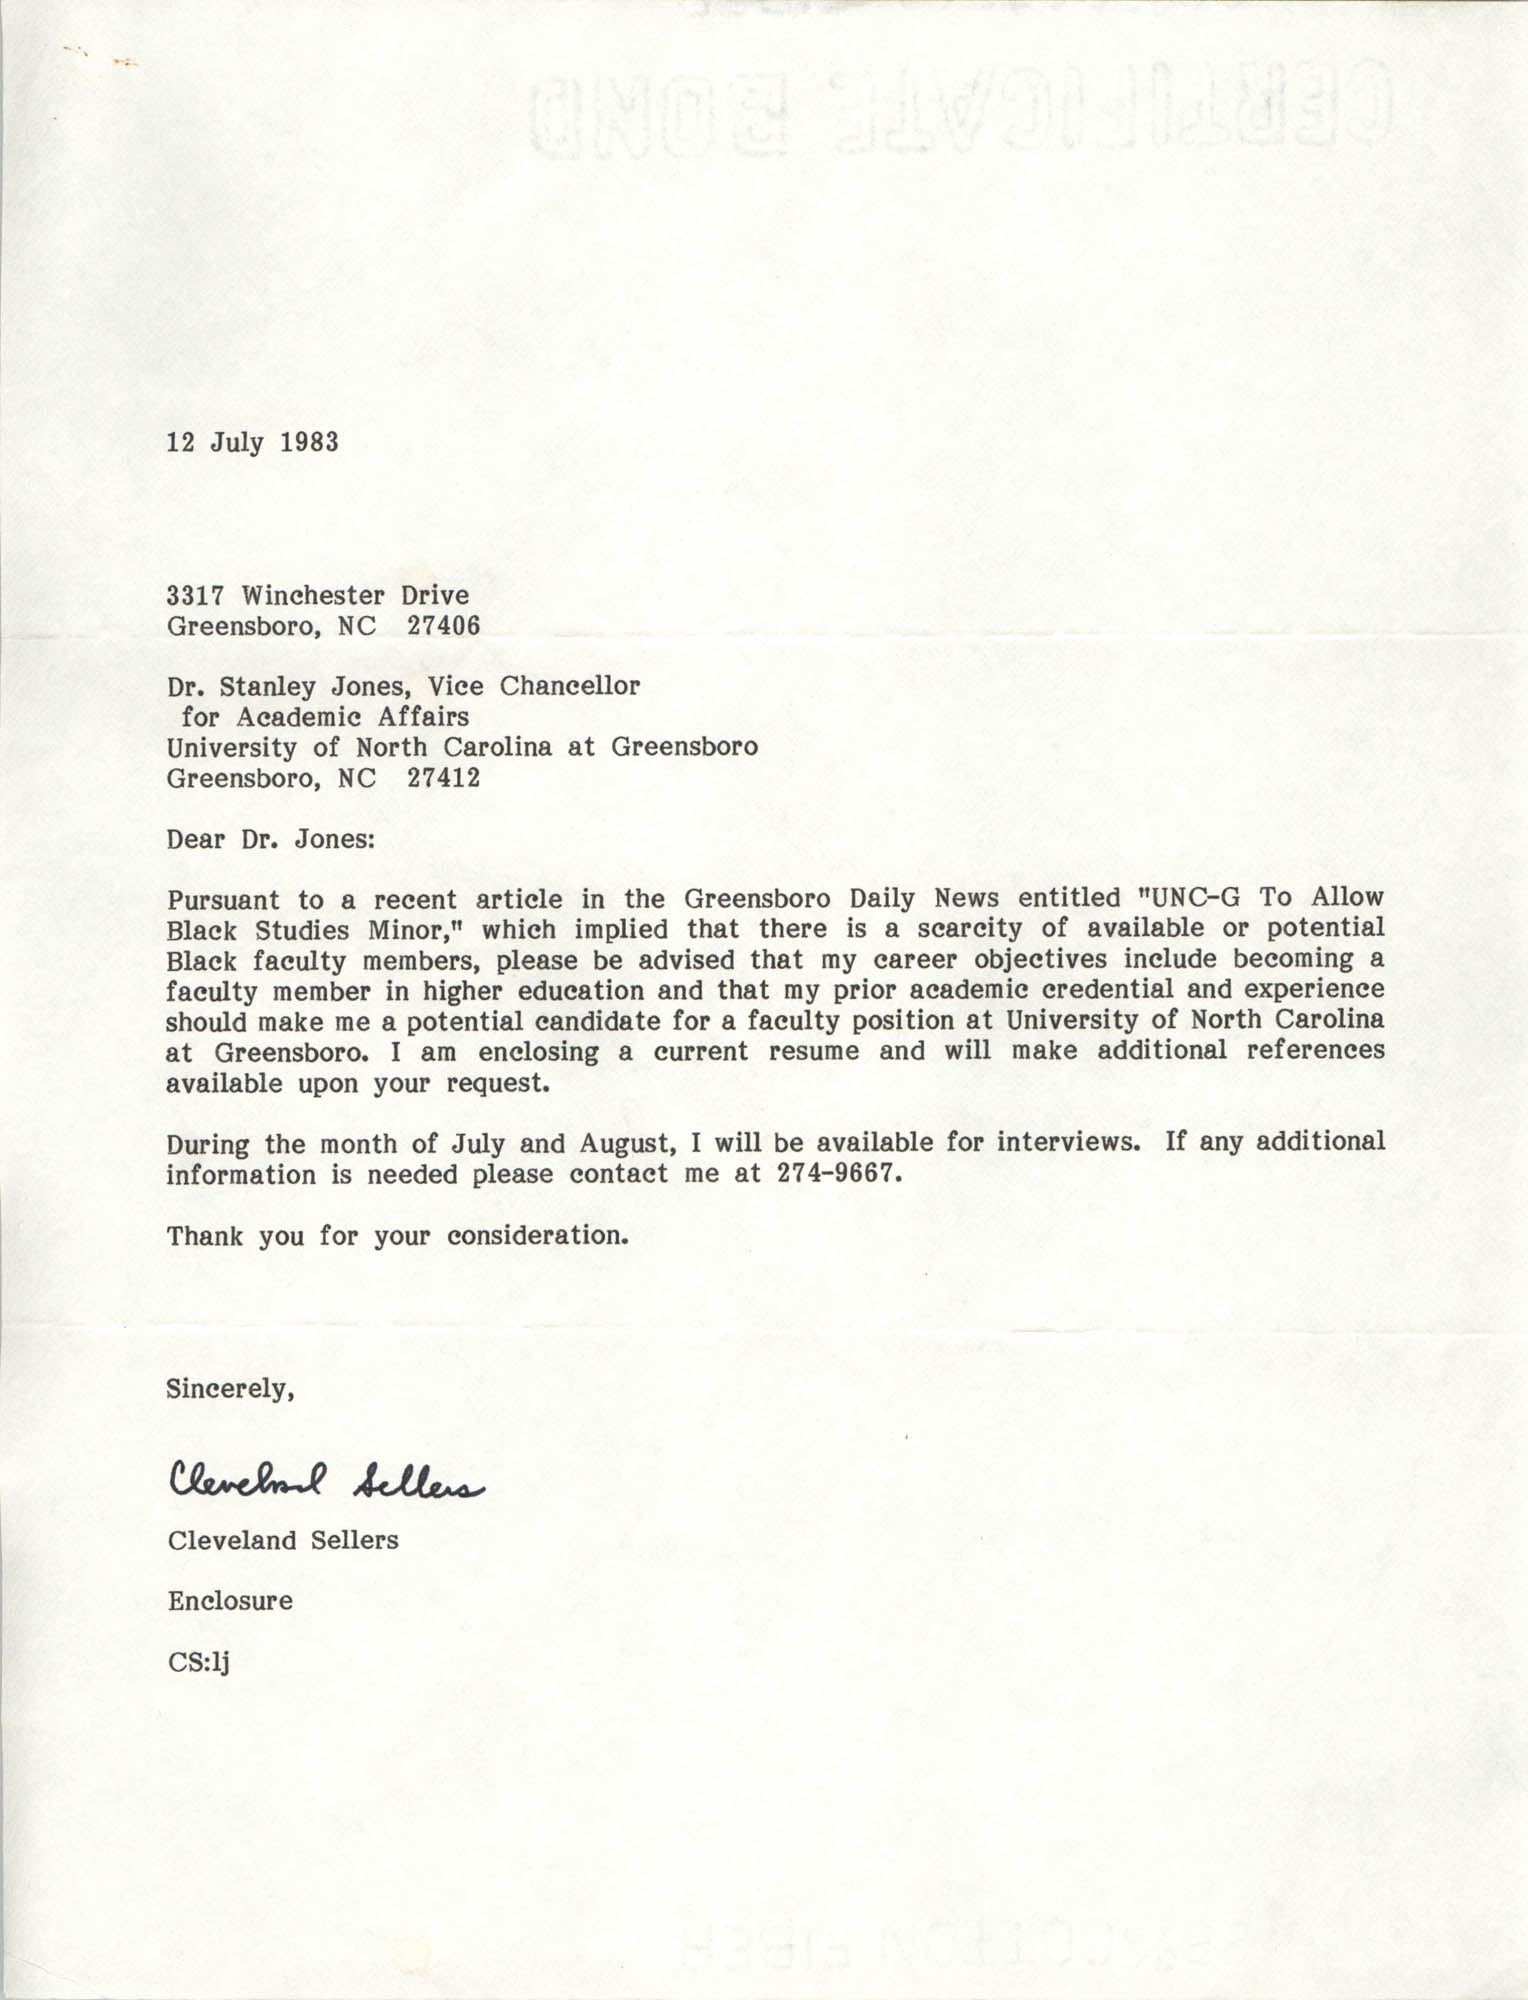 Letter from Cleveland Sellers to Stanley Jones, July 12, 1983